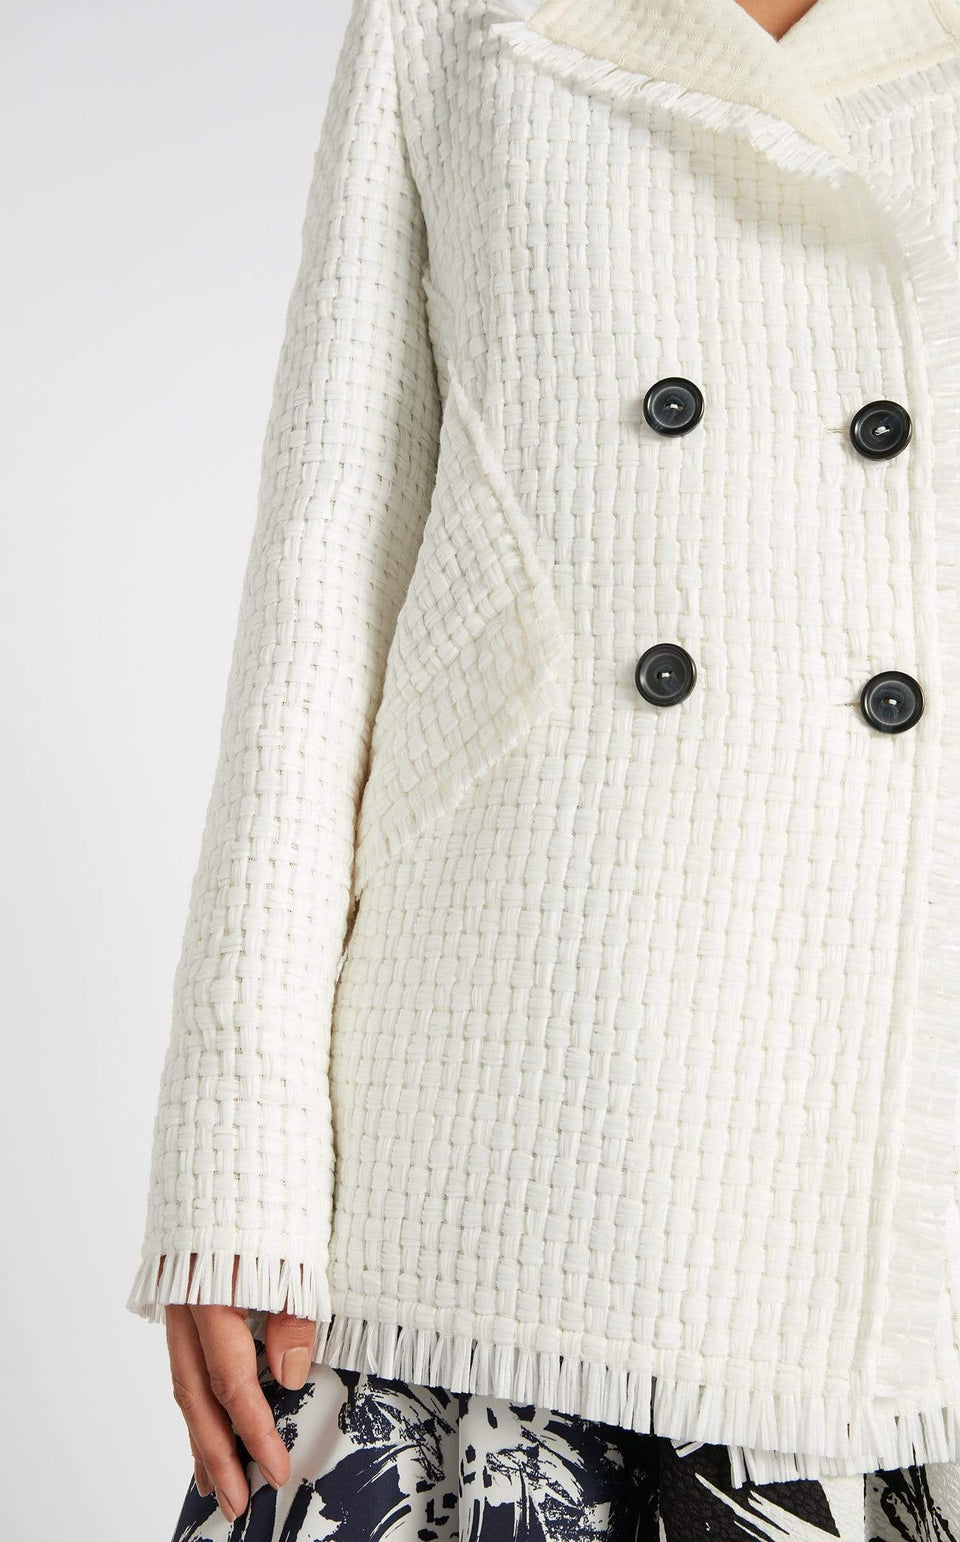 Thaxter Jacket In White from Roland Mouret